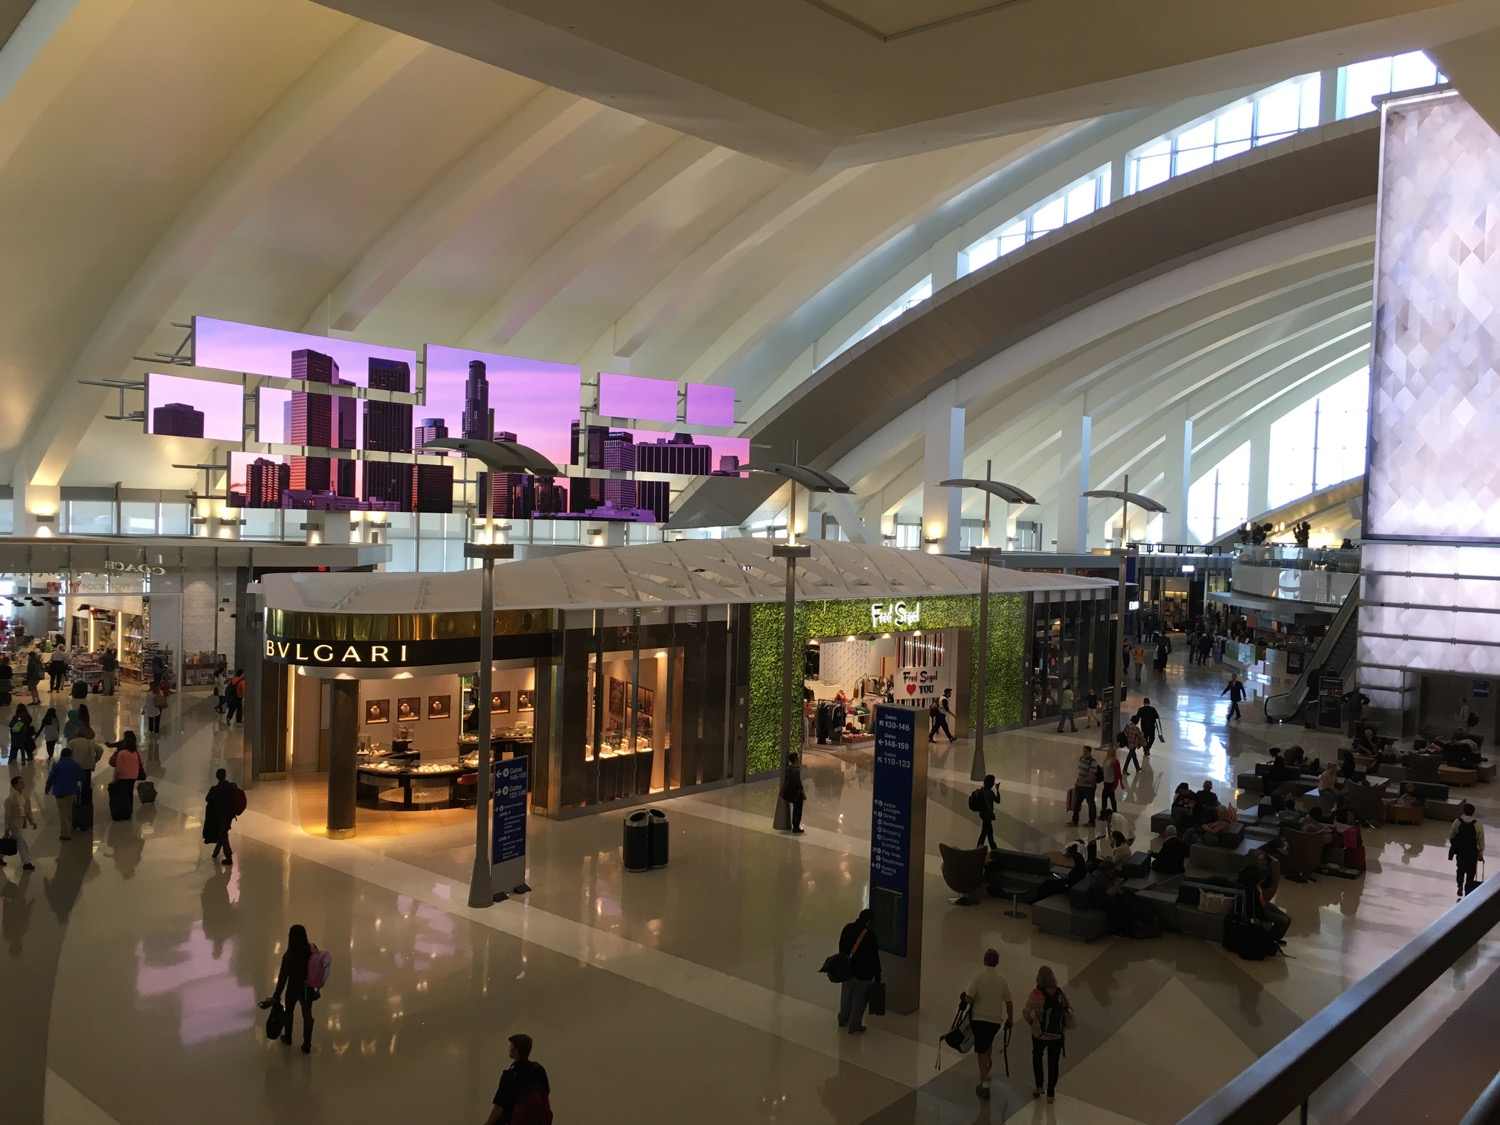 Tom Bradley International Terminal